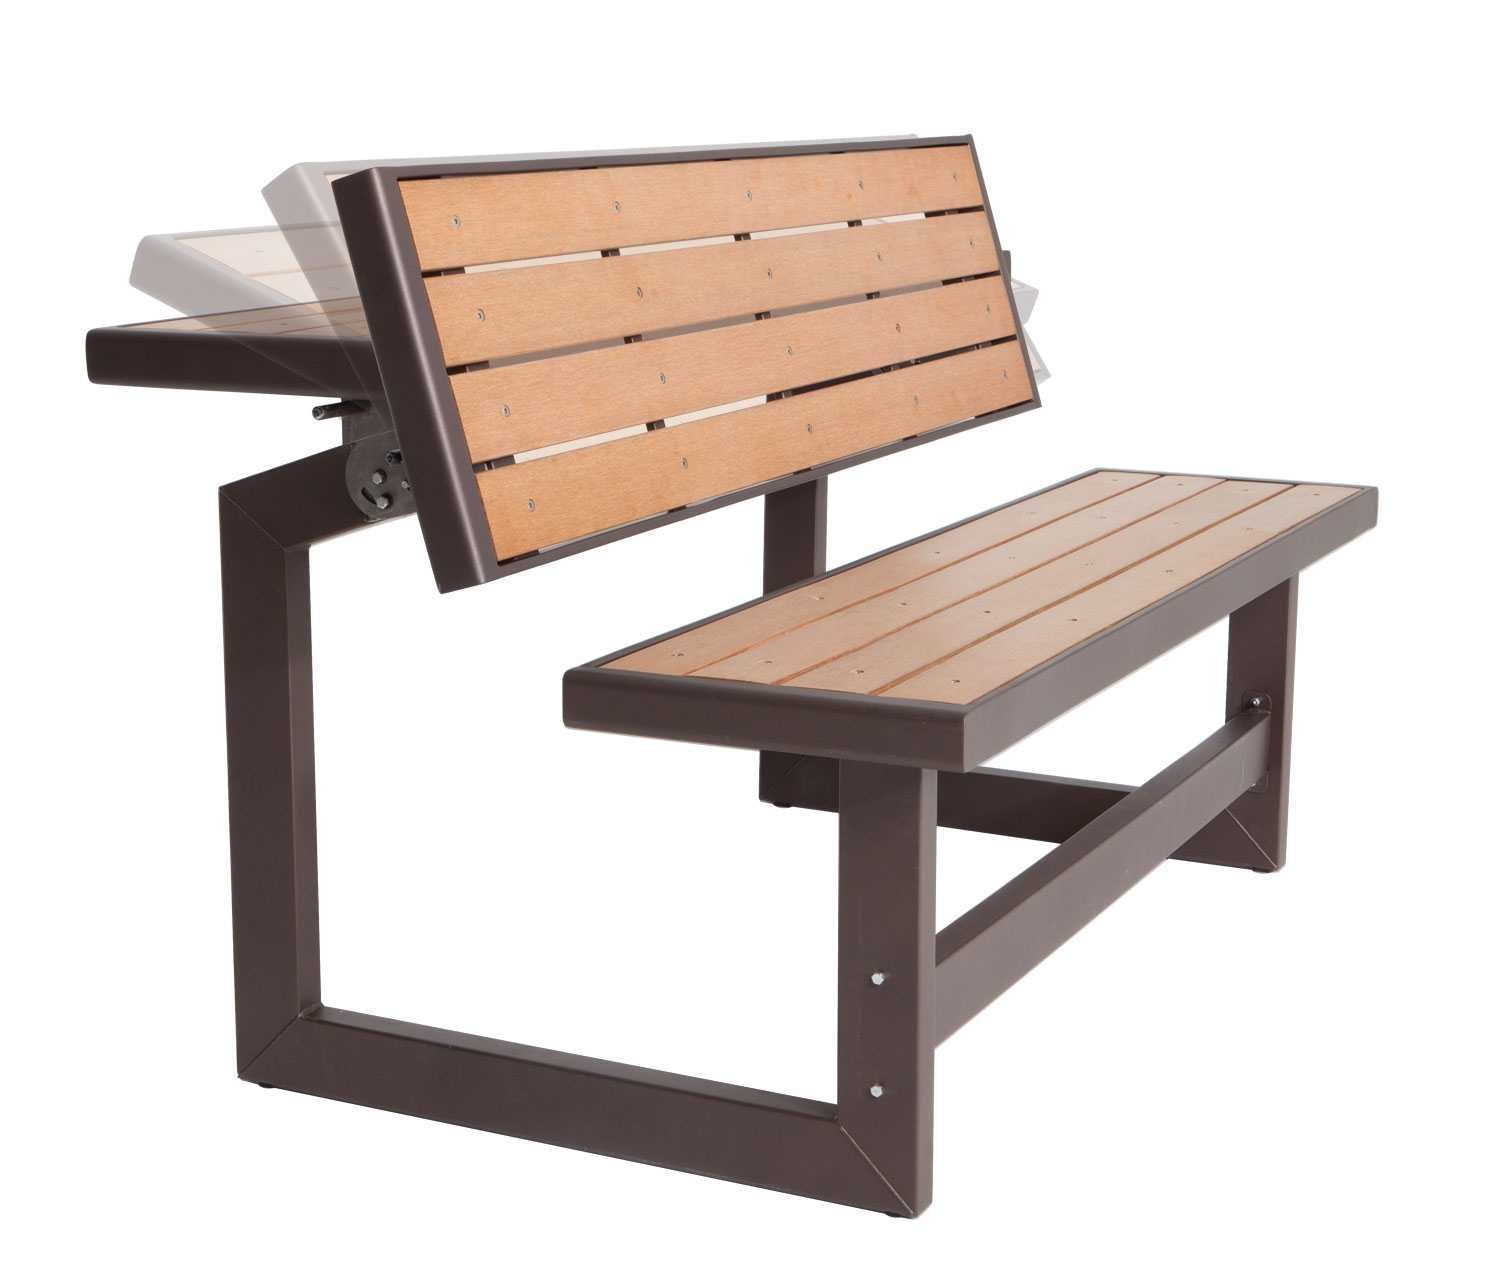 outdoor benches amazon.com : lifetime 60054 convertible bench / table, faux wood  construction : VPZMXCJ